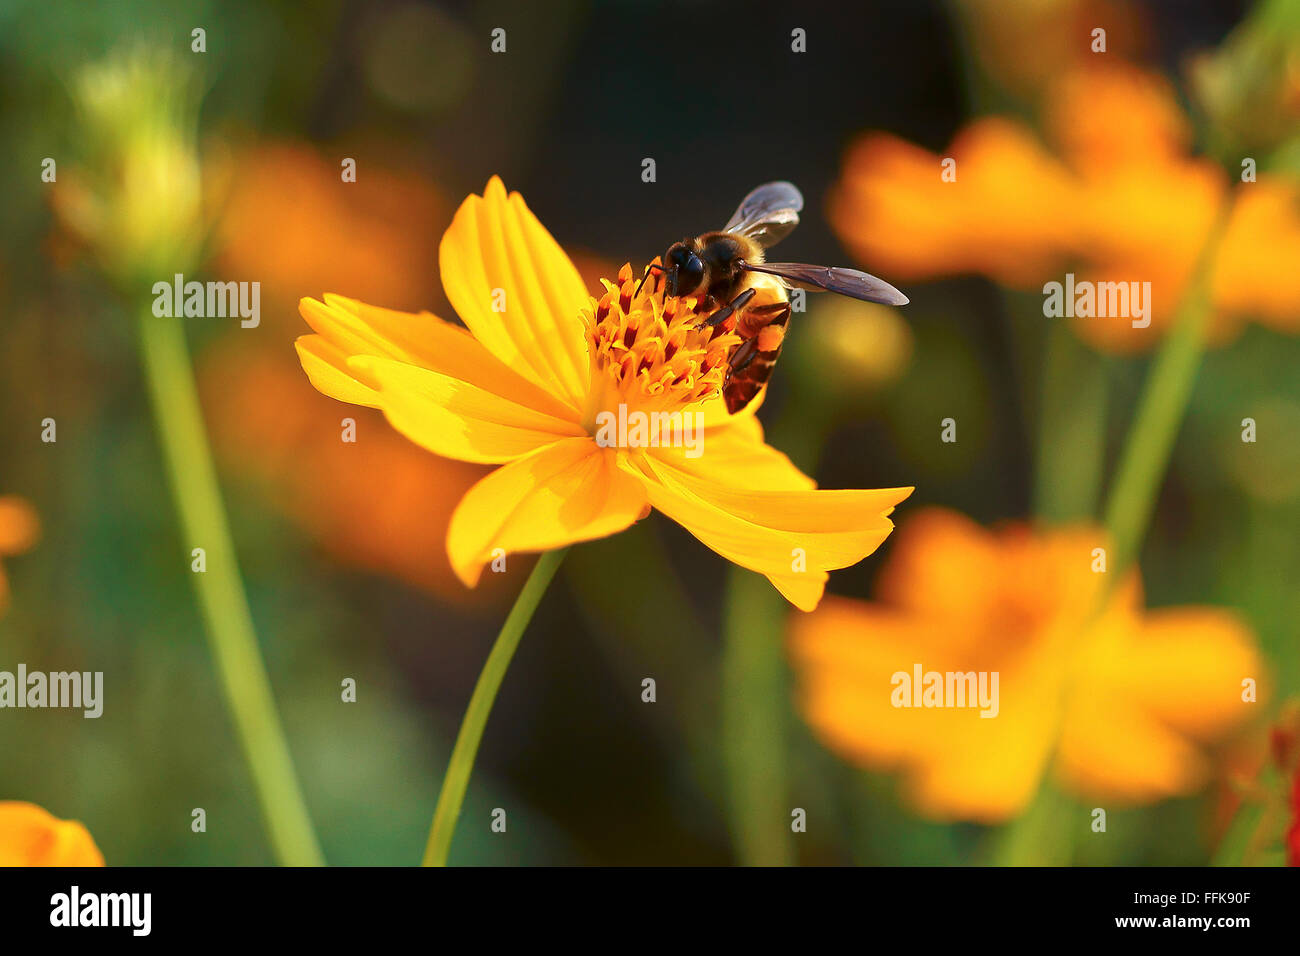 Honey Bee on Yellow Flower, Close Up Macro Stock Photo